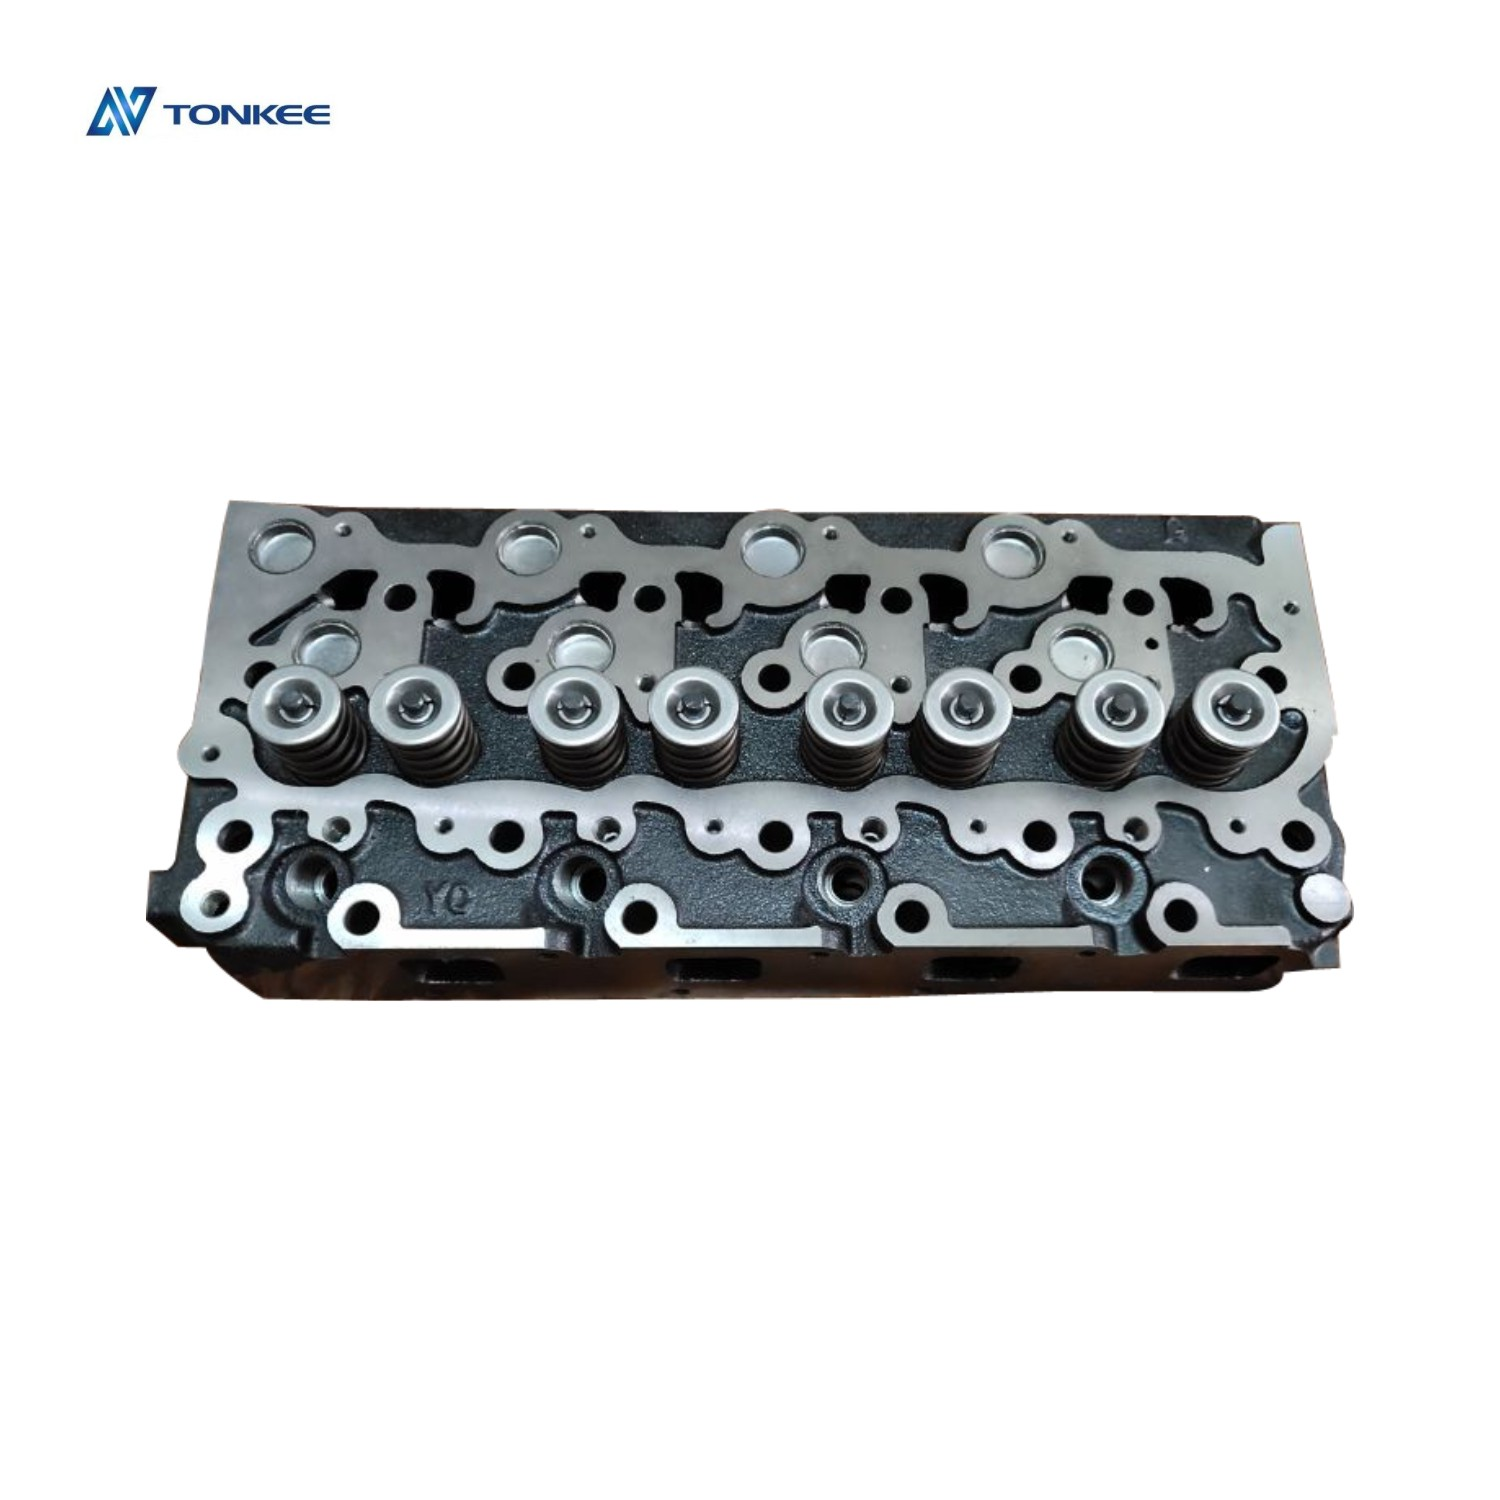 Construction Machinery Parts Brand new domestic cylinder head assy  V2403 cyinder head assy suitable for V2403 excavator engine